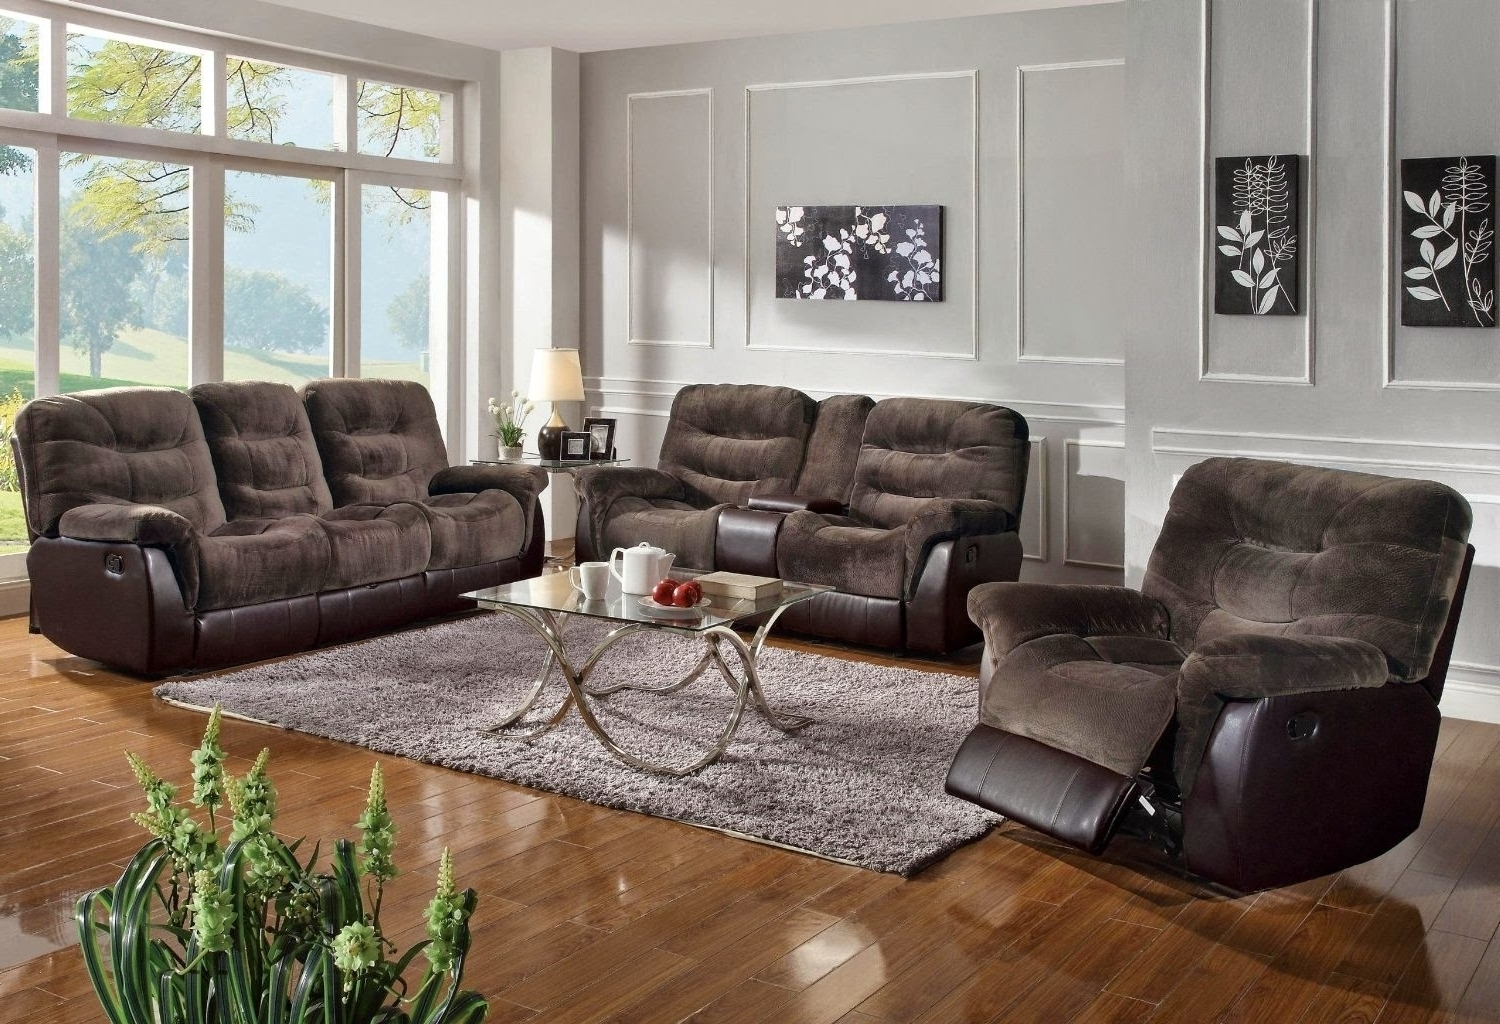 Famous Sectional Sofas For Small Spaces With Recliners With Regard To Furniture Reclining Sectional Sofas For Small Spaces Reclining (View 4 of 15)